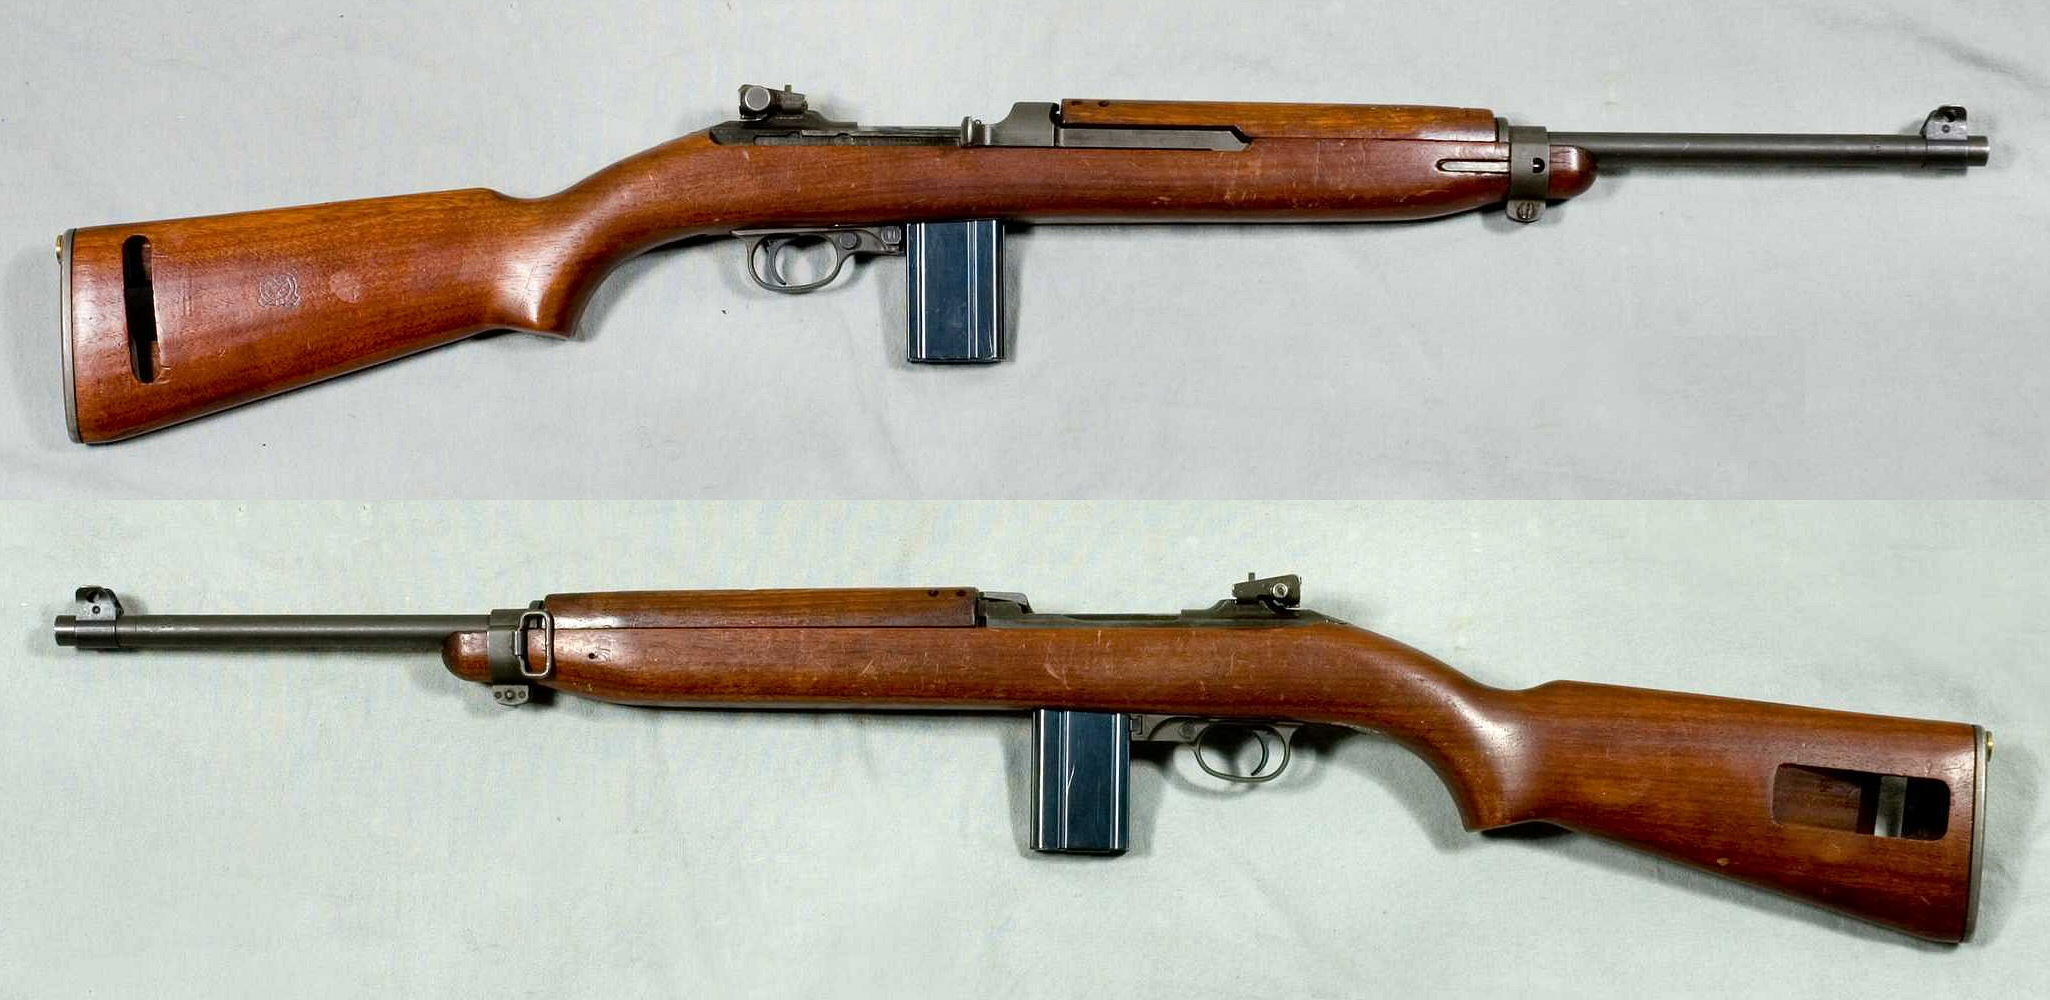 M1_Carbine_Mk_I_-_USA_-_Arm%C3%A9museum.